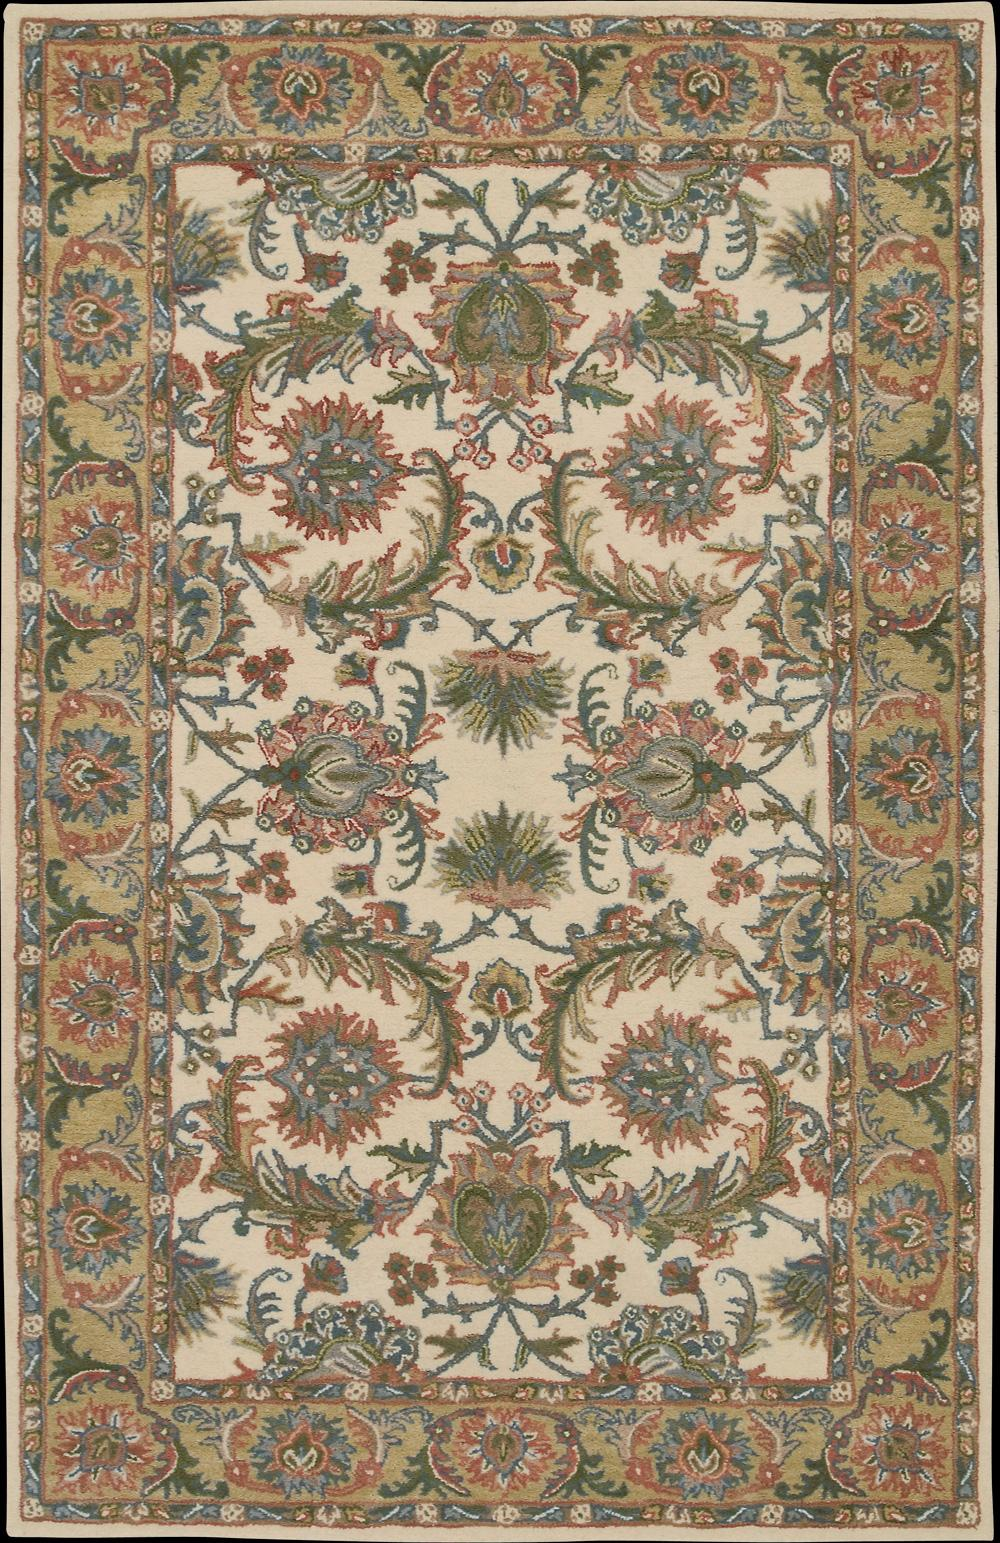 "Nourison India House Area Rug 8' x 10'6"" - Item Number: 33856"